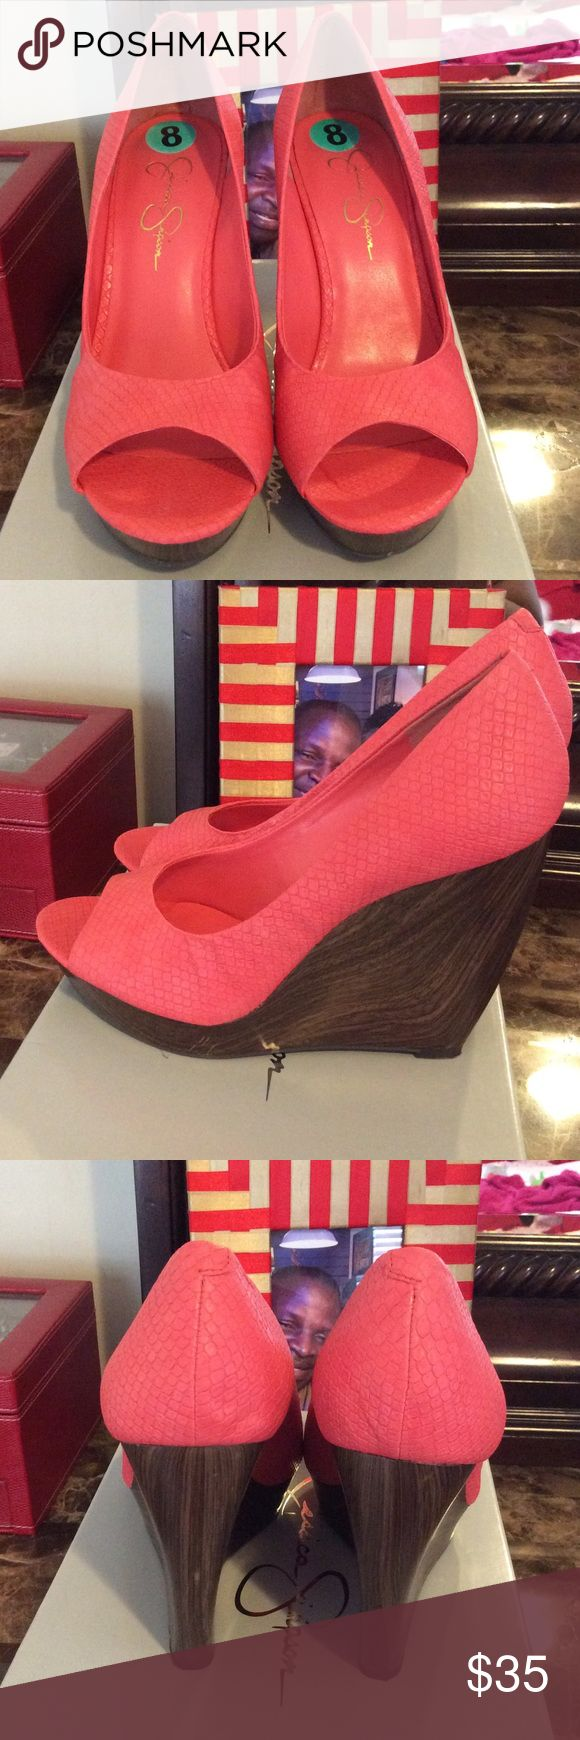 Jessica Simpson Wedges 5 inch heel with 1 inch platform. Worn once. Jessica Simpson Shoes